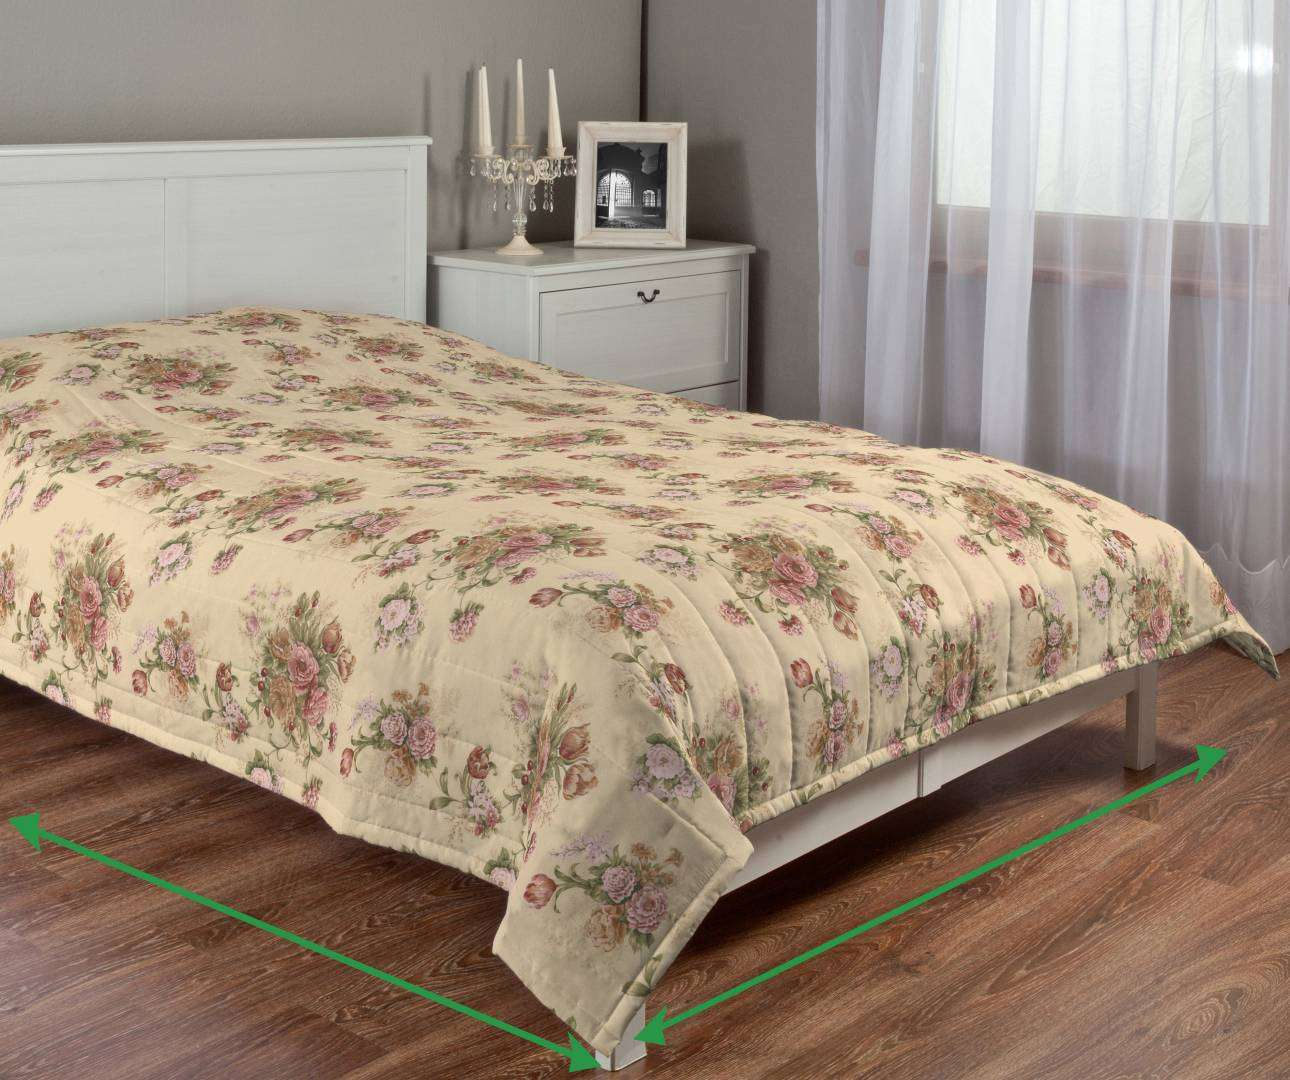 Quilted throw (vertical quilt pattern) in collection Flowers, fabric: 302-01